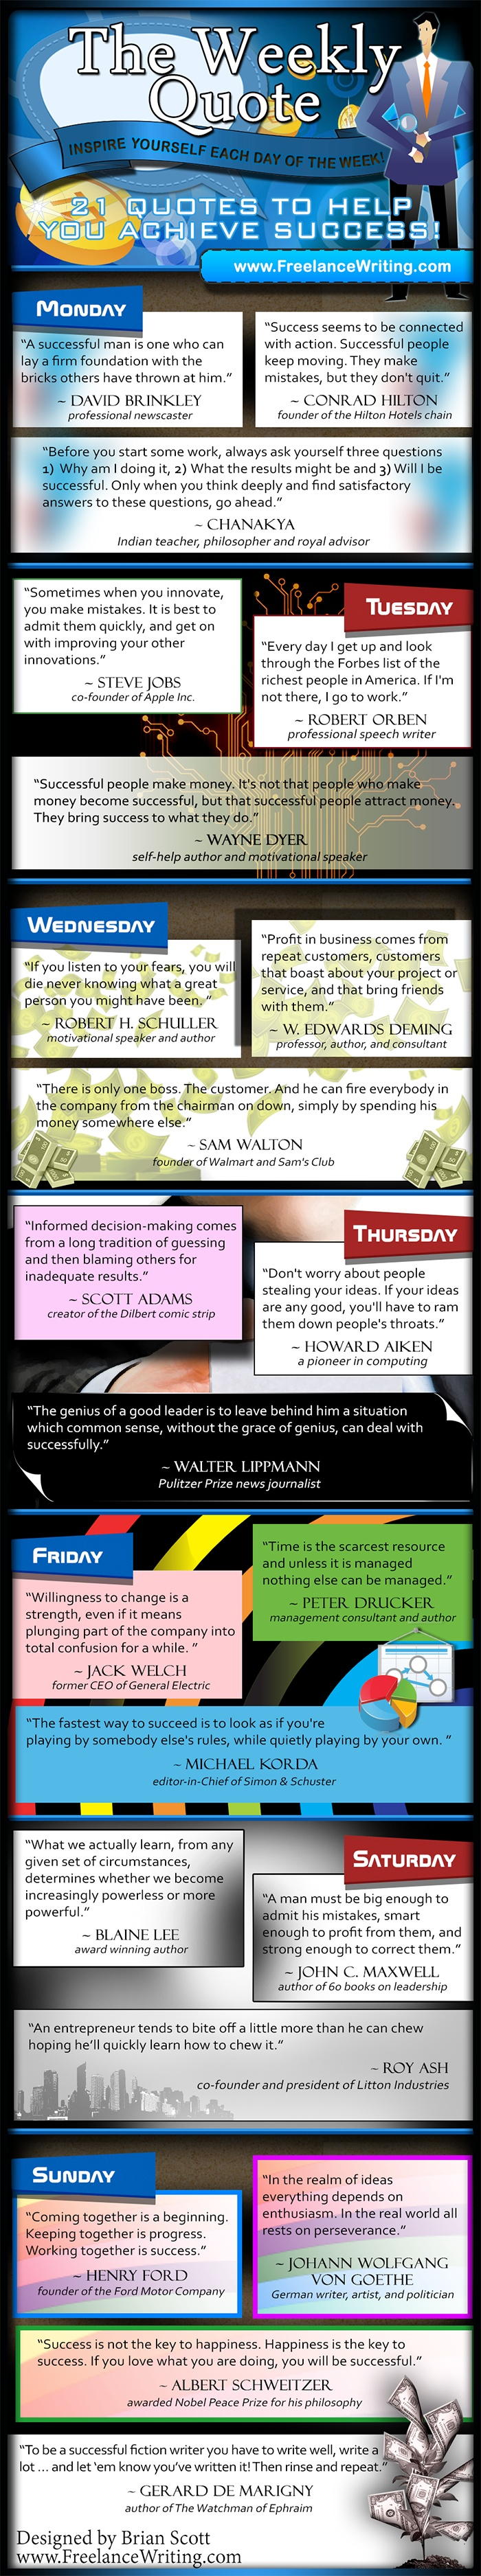 Quotes on achieving success in both your career and in life. Designed by Brian Scott, www.FreelanceWriting.com